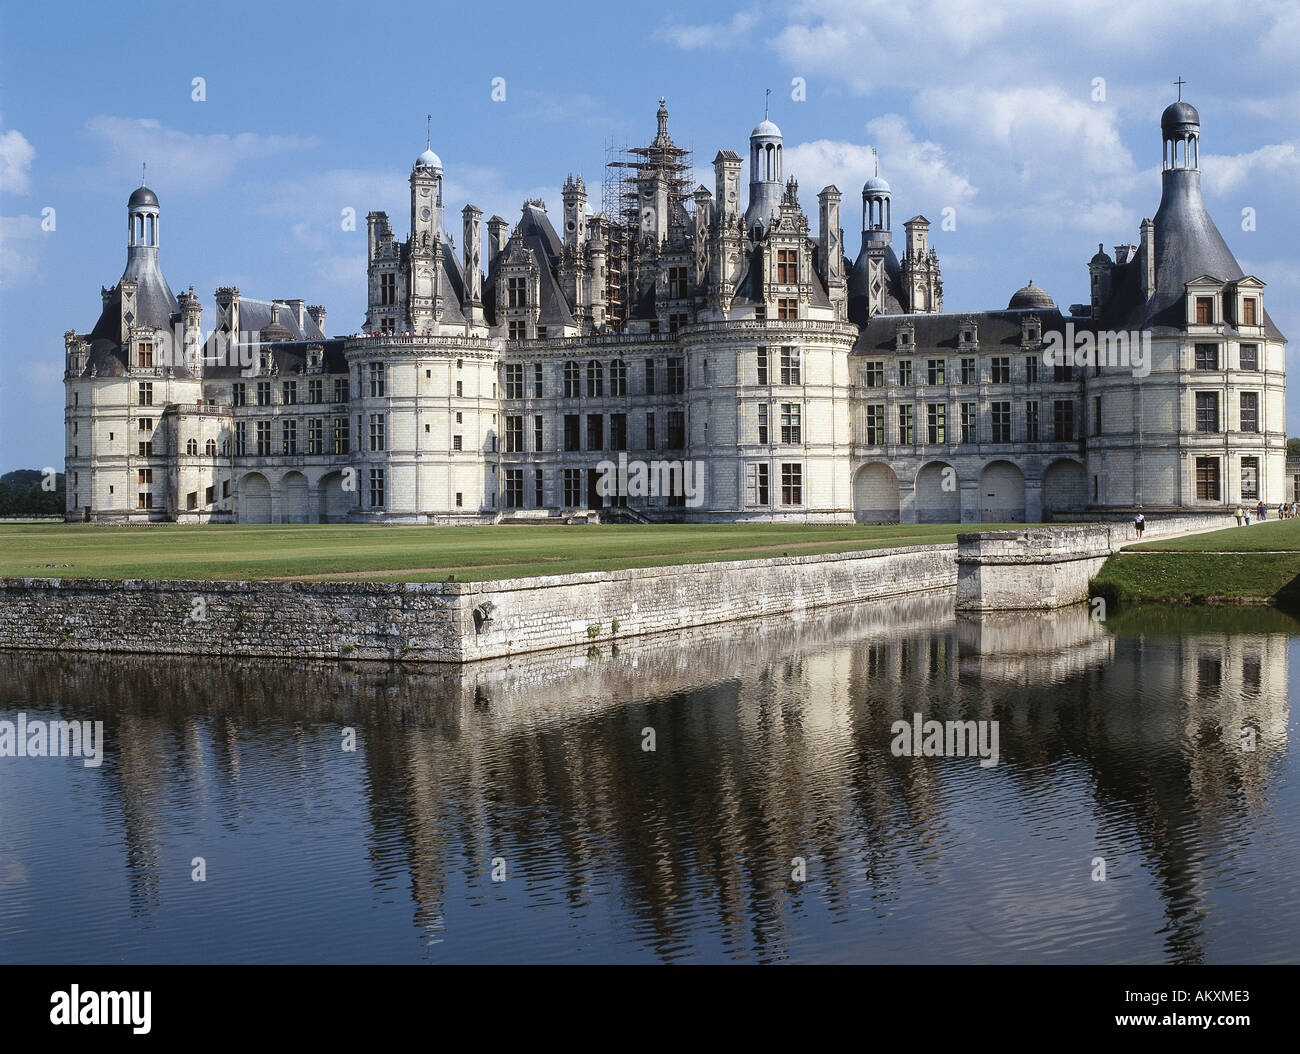 The 16th Century French Renaissance Chateau De Chambord Reflecting On Water In Foreground France